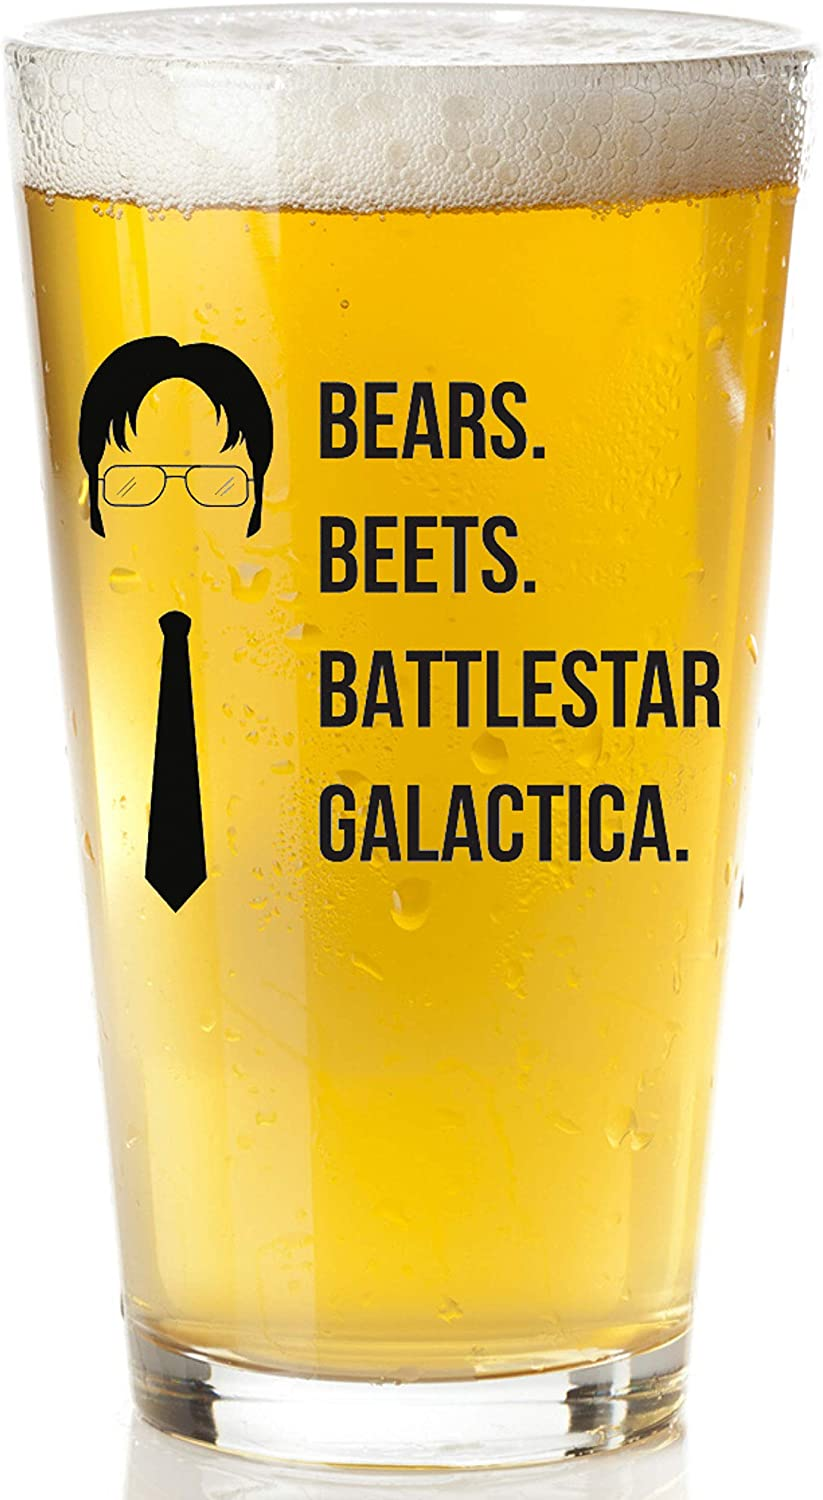 Bears Beets Battlestar Galactica Beer Glass With | The Office Merchandise Mug | Dwight Schrute Funny Quote Dunder Mifflin Craft Beer Glasses